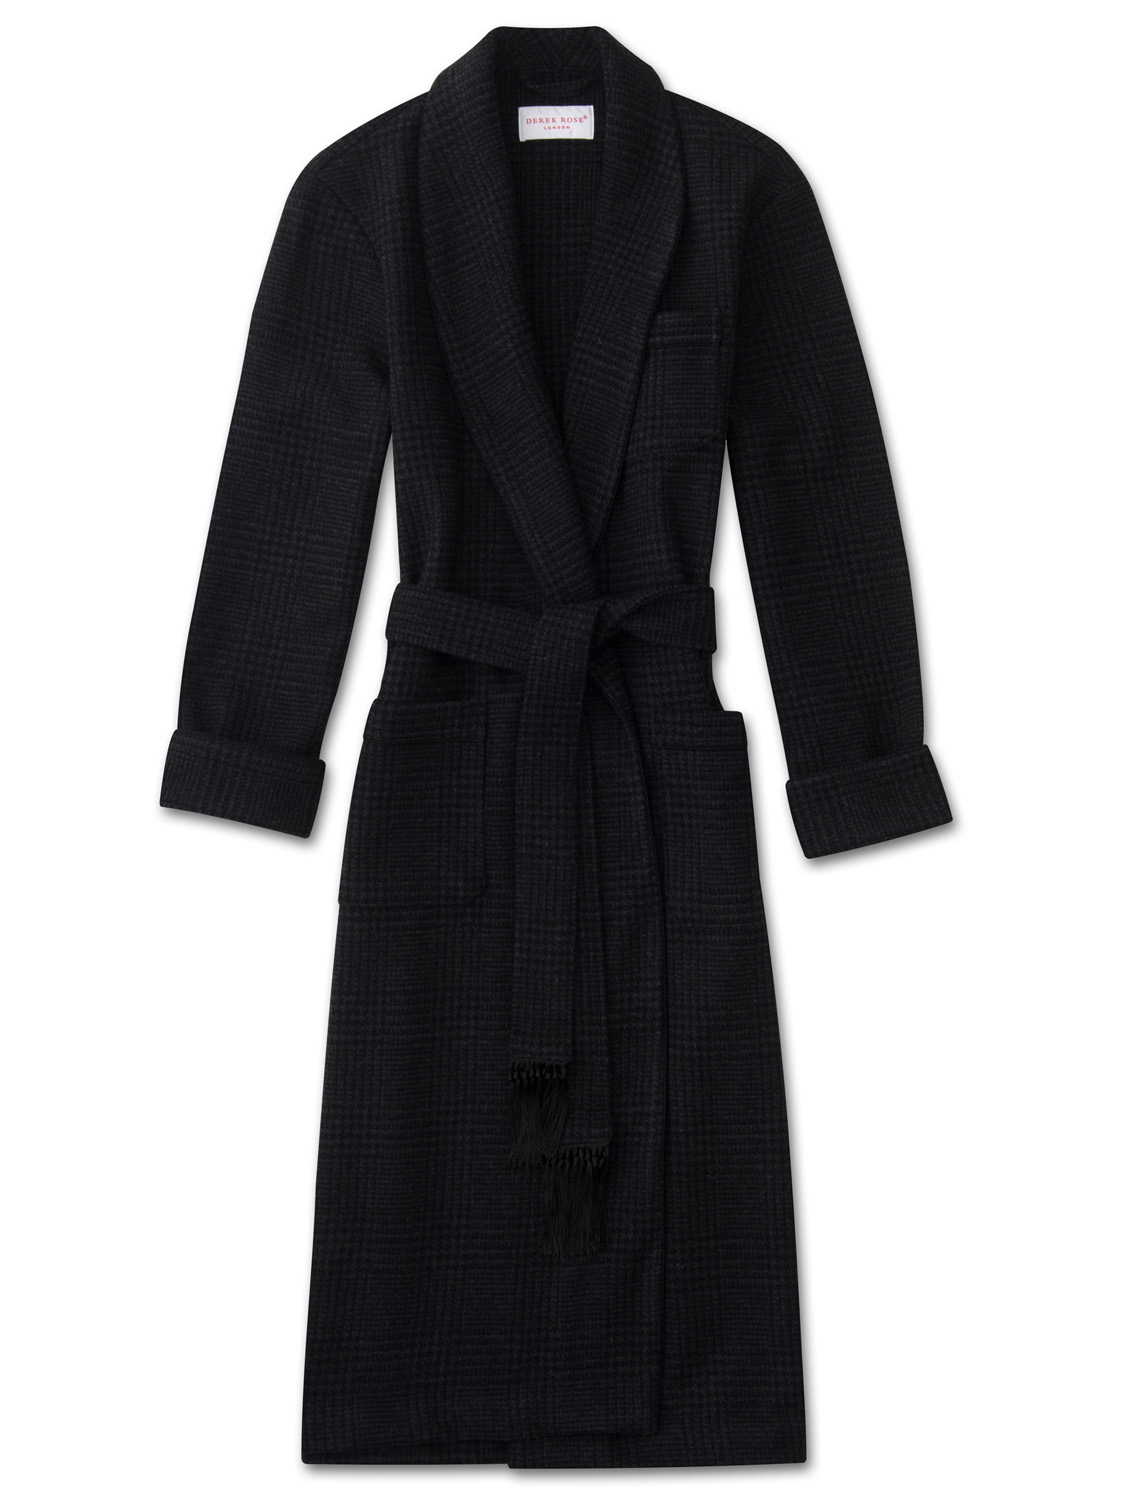 premium selection top-rated newest discount price Men's Tasseled Belt Dressing Gown Blandford Merino Cashmere Check Charcoal